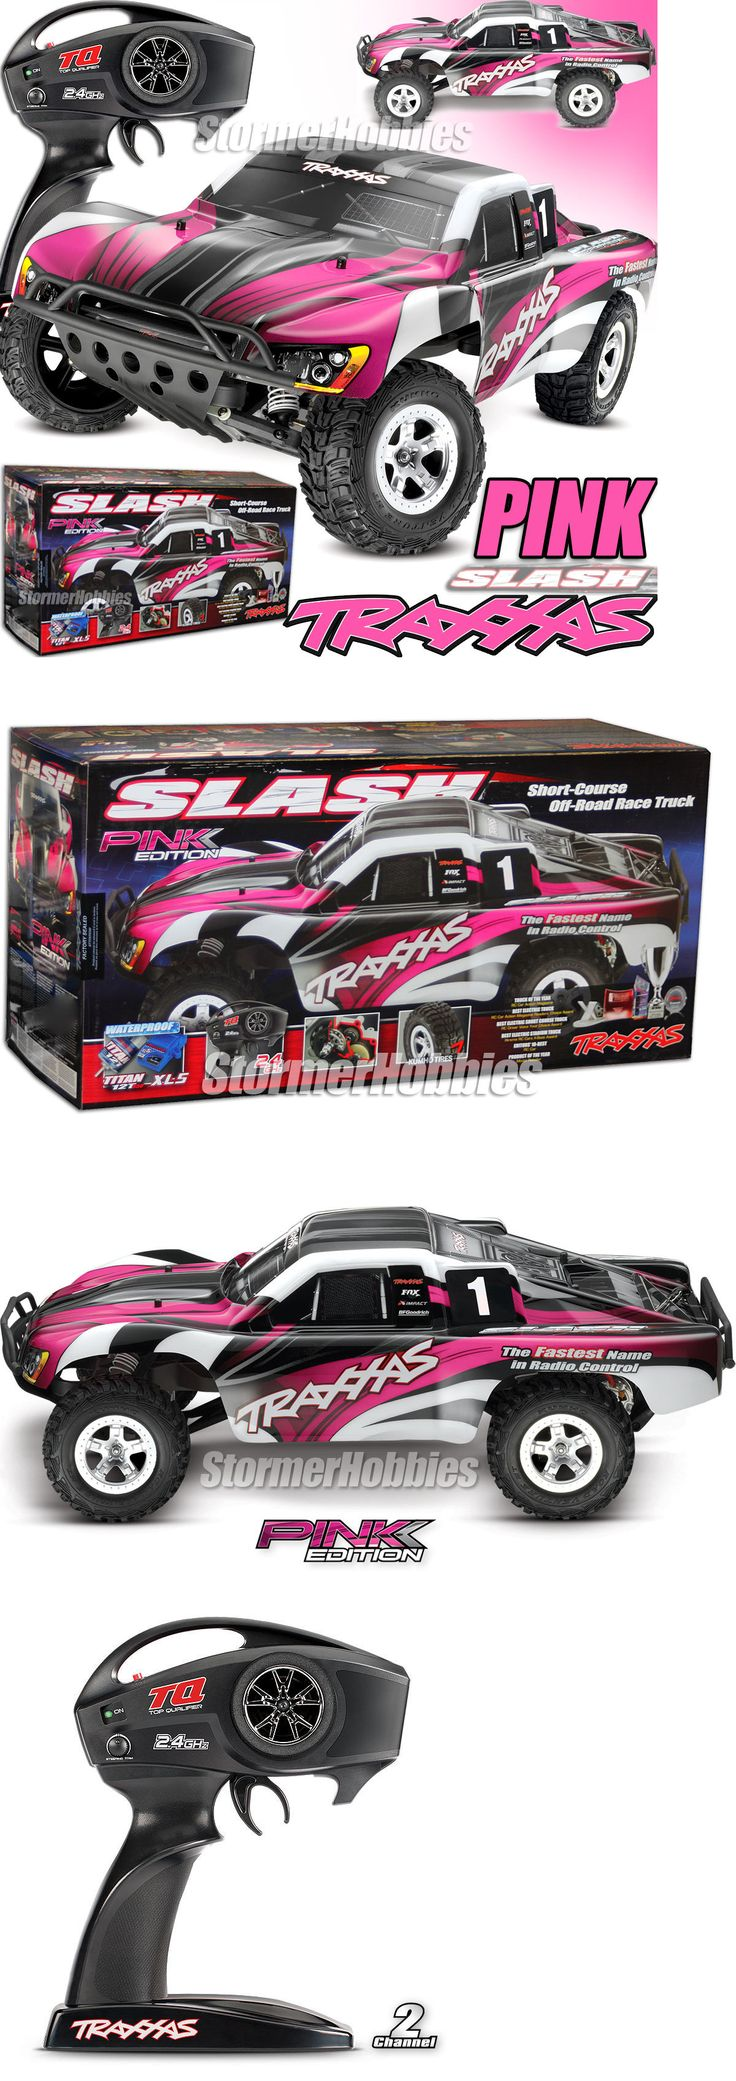 Cars Trucks and Motorcycles 182183: Traxxas Slash Xl-5 2Wd Rtr W Tq 2.4Ghz Short Course Electric Rc Truck 58024 Pink -> BUY IT NOW ONLY: $189.95 on eBay!